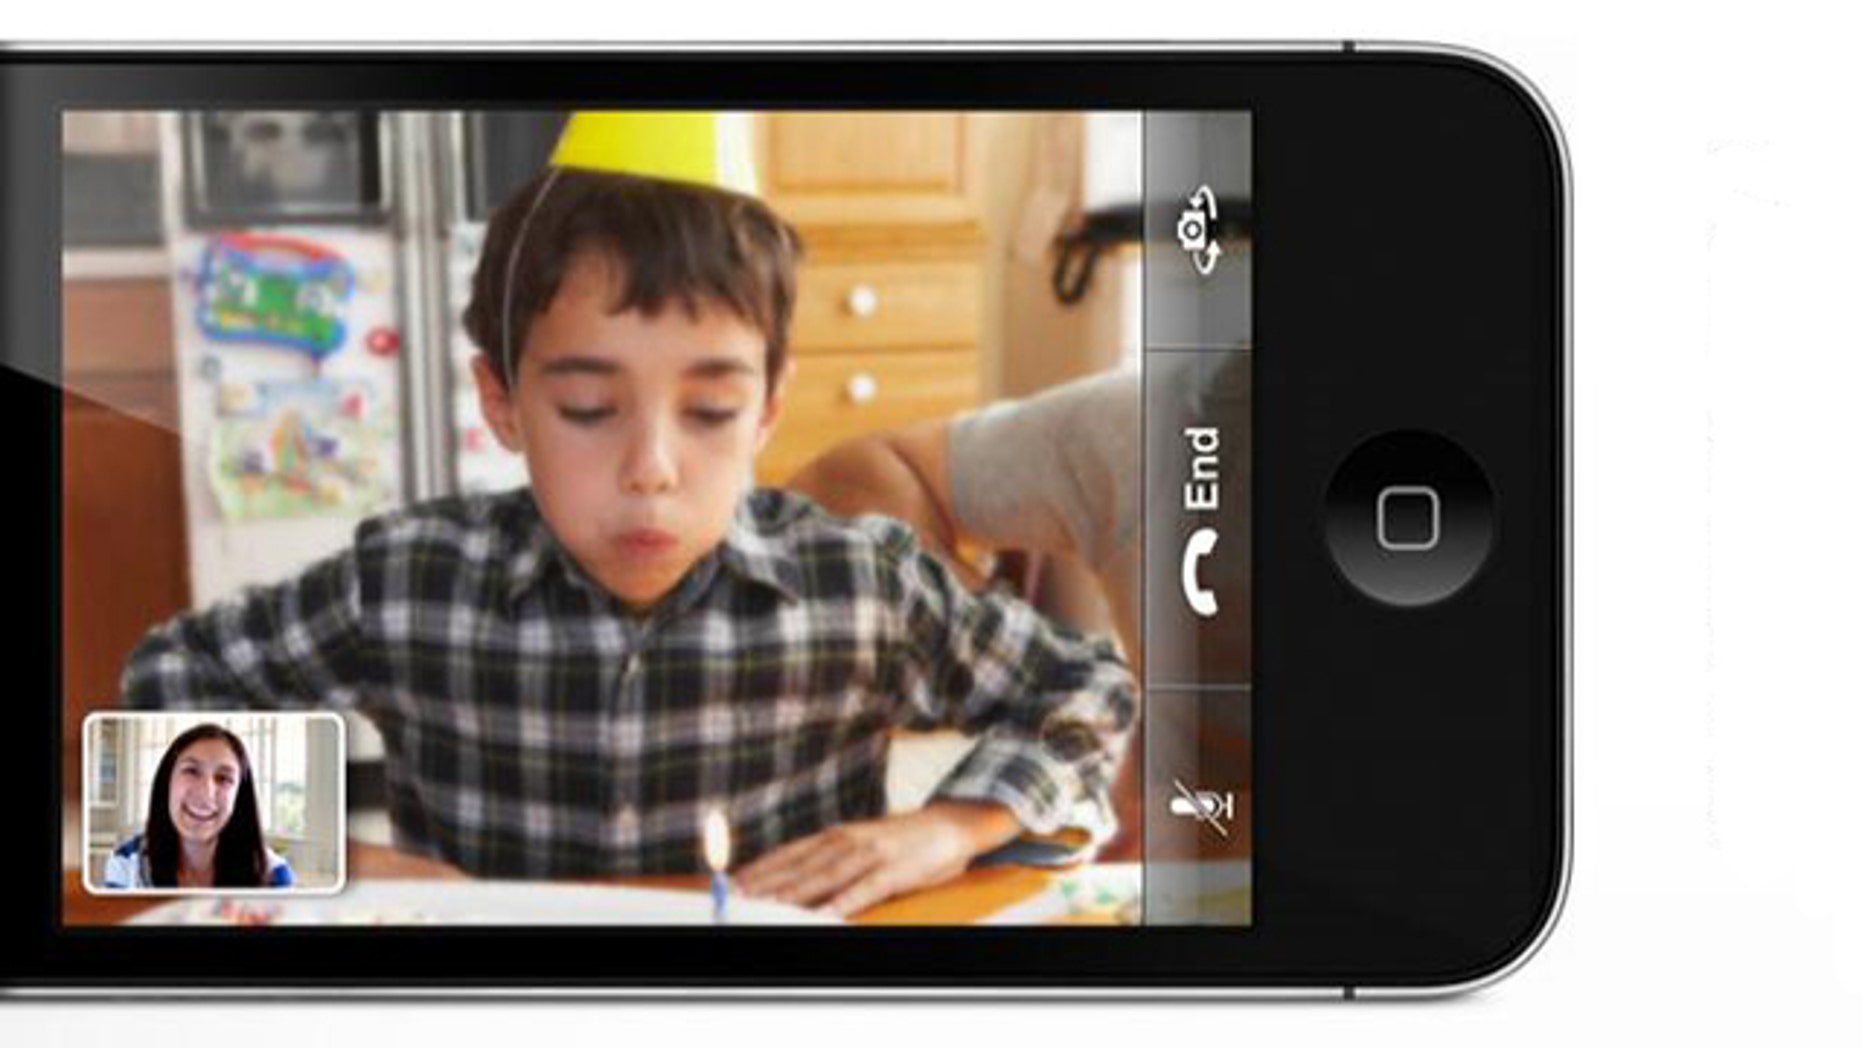 Today's smartphones are so powerful -- and internet connections so fast -- that video calls are poised to explode. Apple's FaceTime, seen here, may be just the tip of the iceberg.